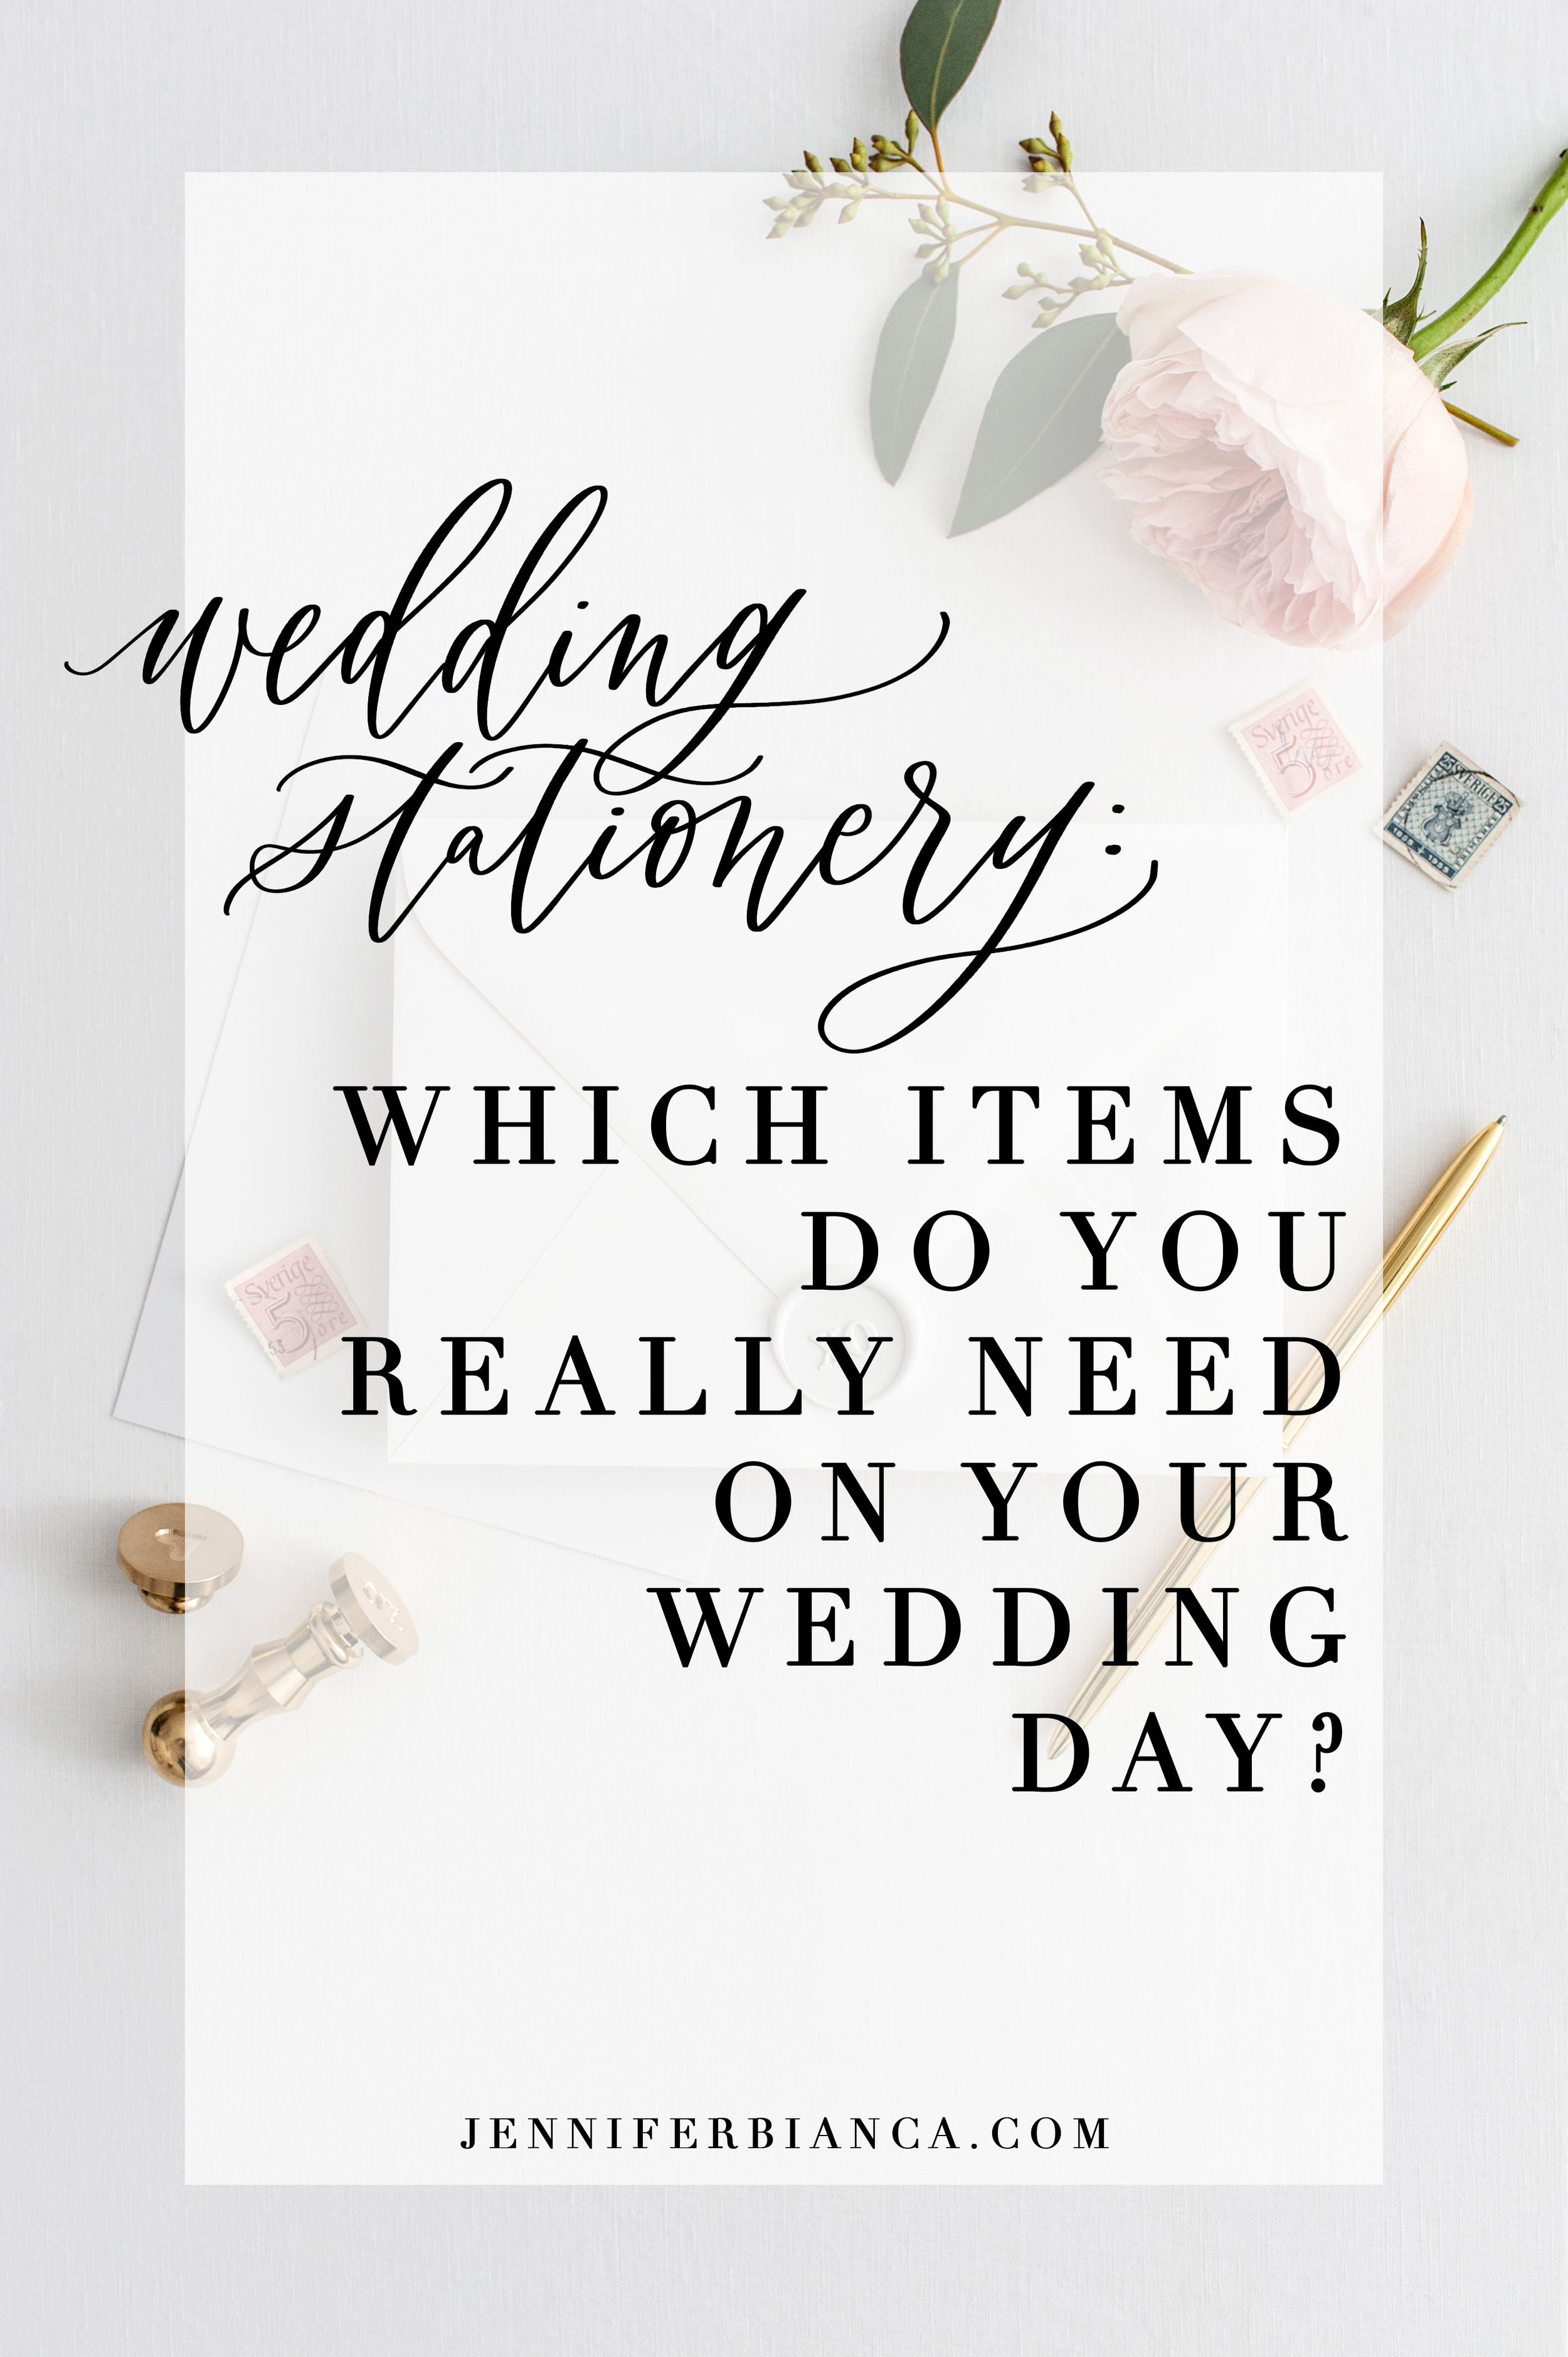 Wedding stationery: What items do you really need on your wedding day?